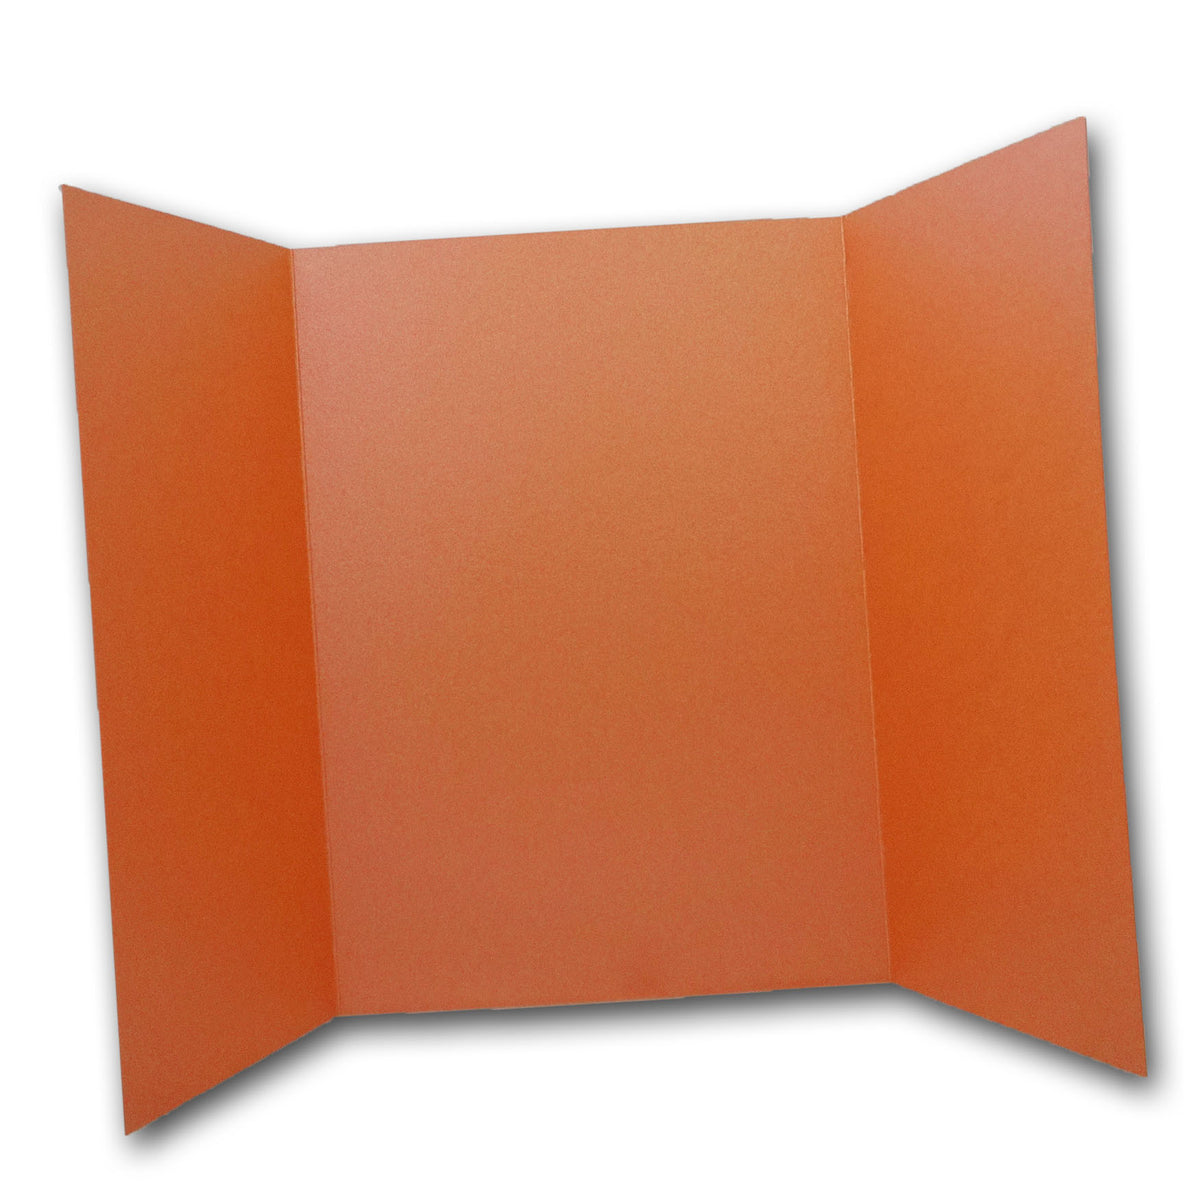 Shimmery Orange 5x7 Gatefold Discount Card Stock DIY Invitations